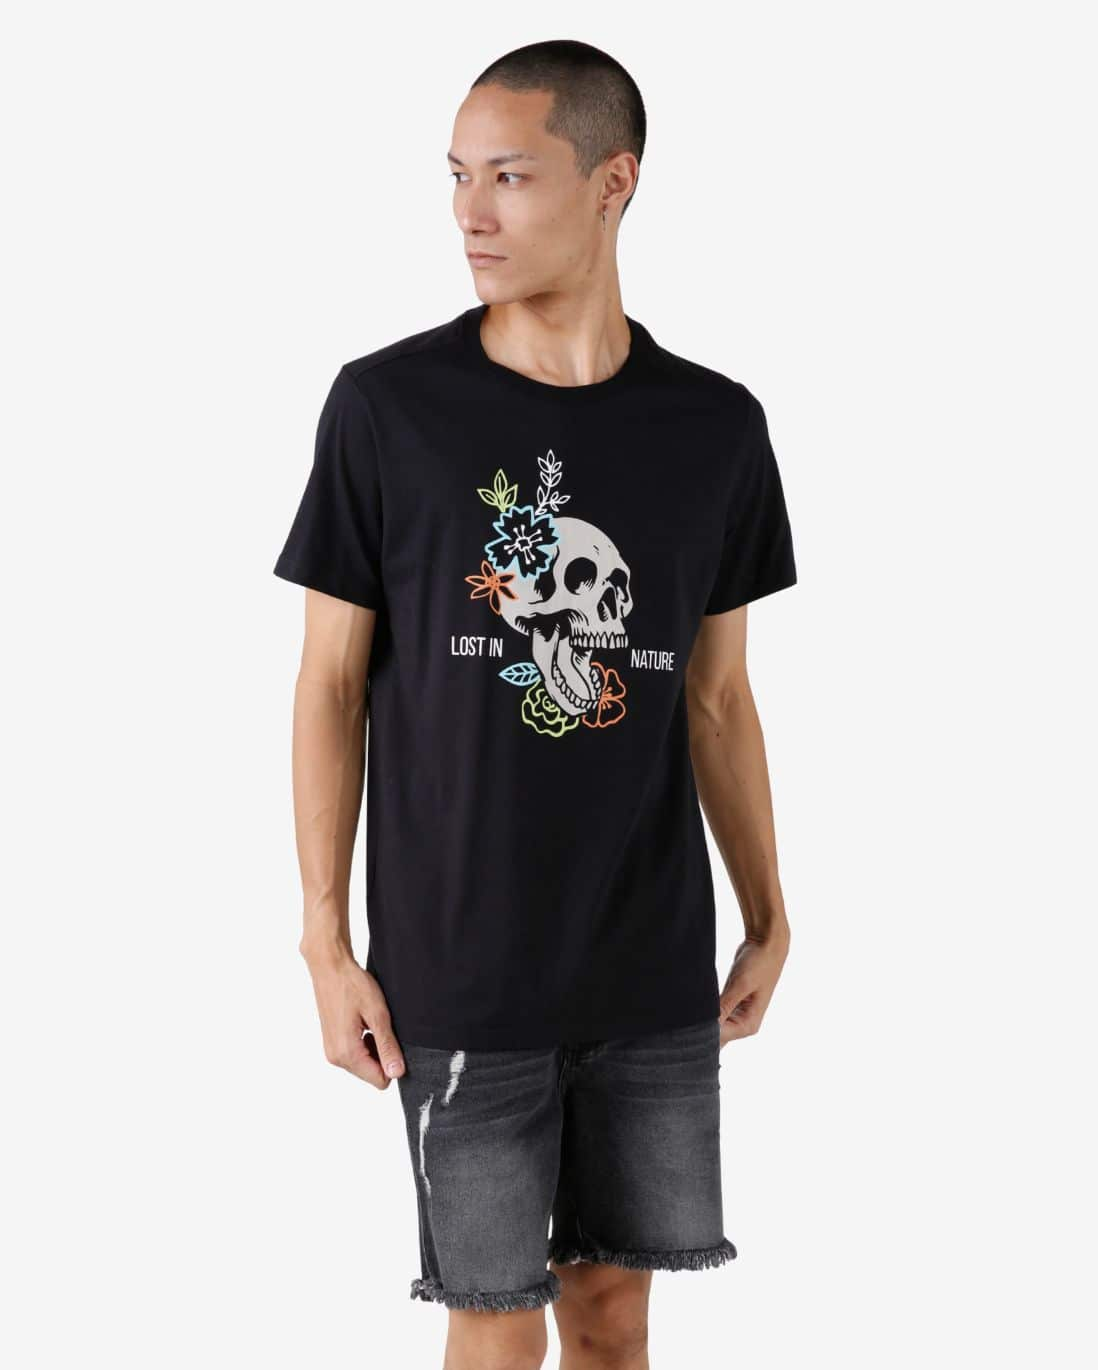 Camiseta Lost in Nature - Preto